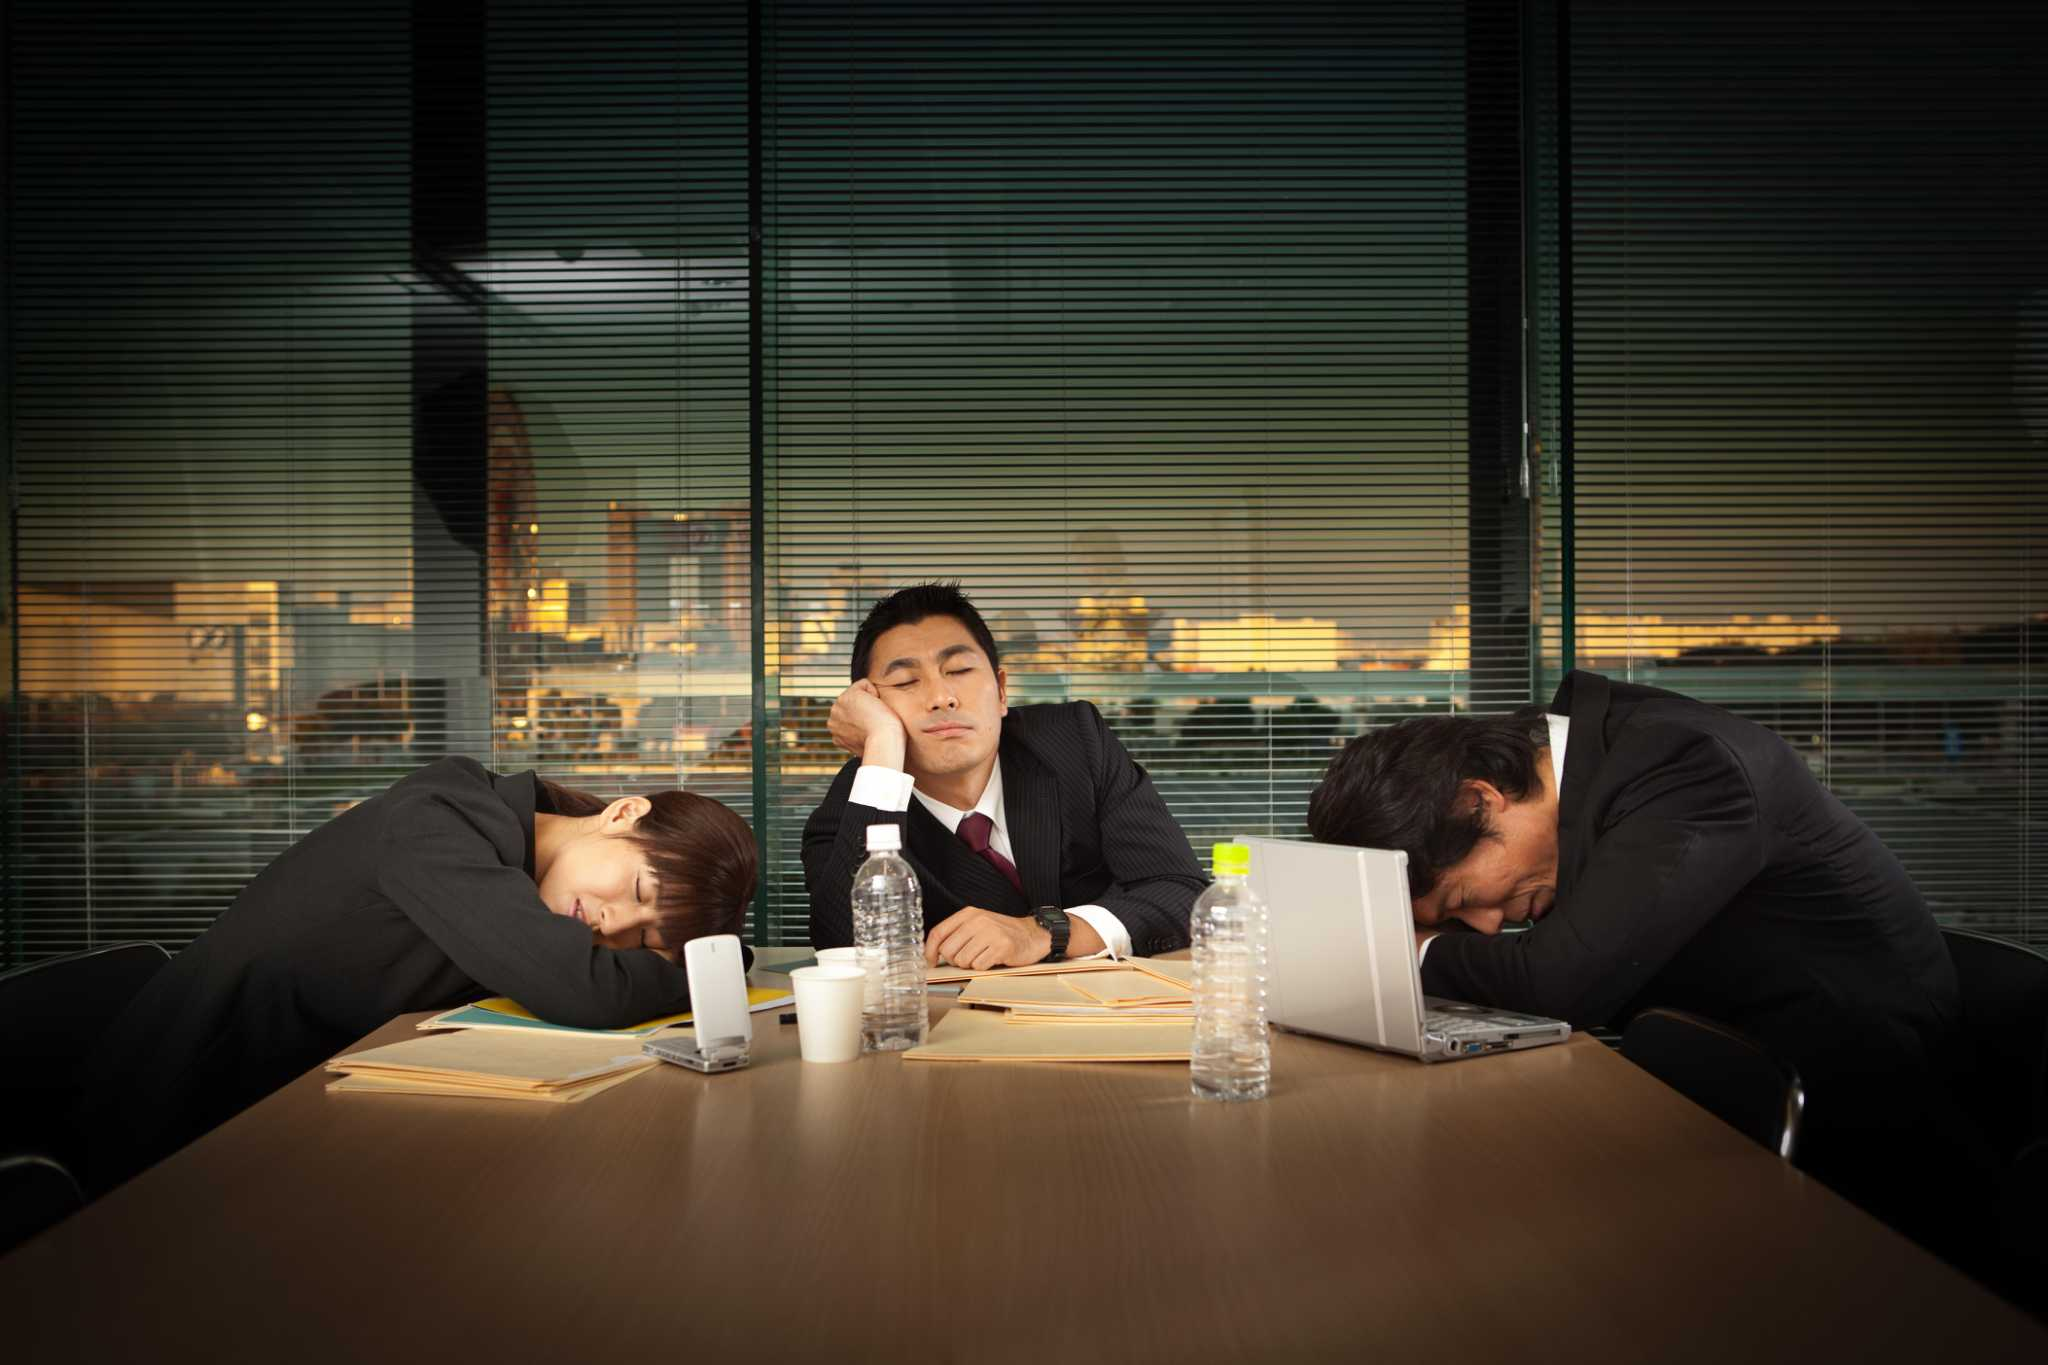 Are employee naps good for business?